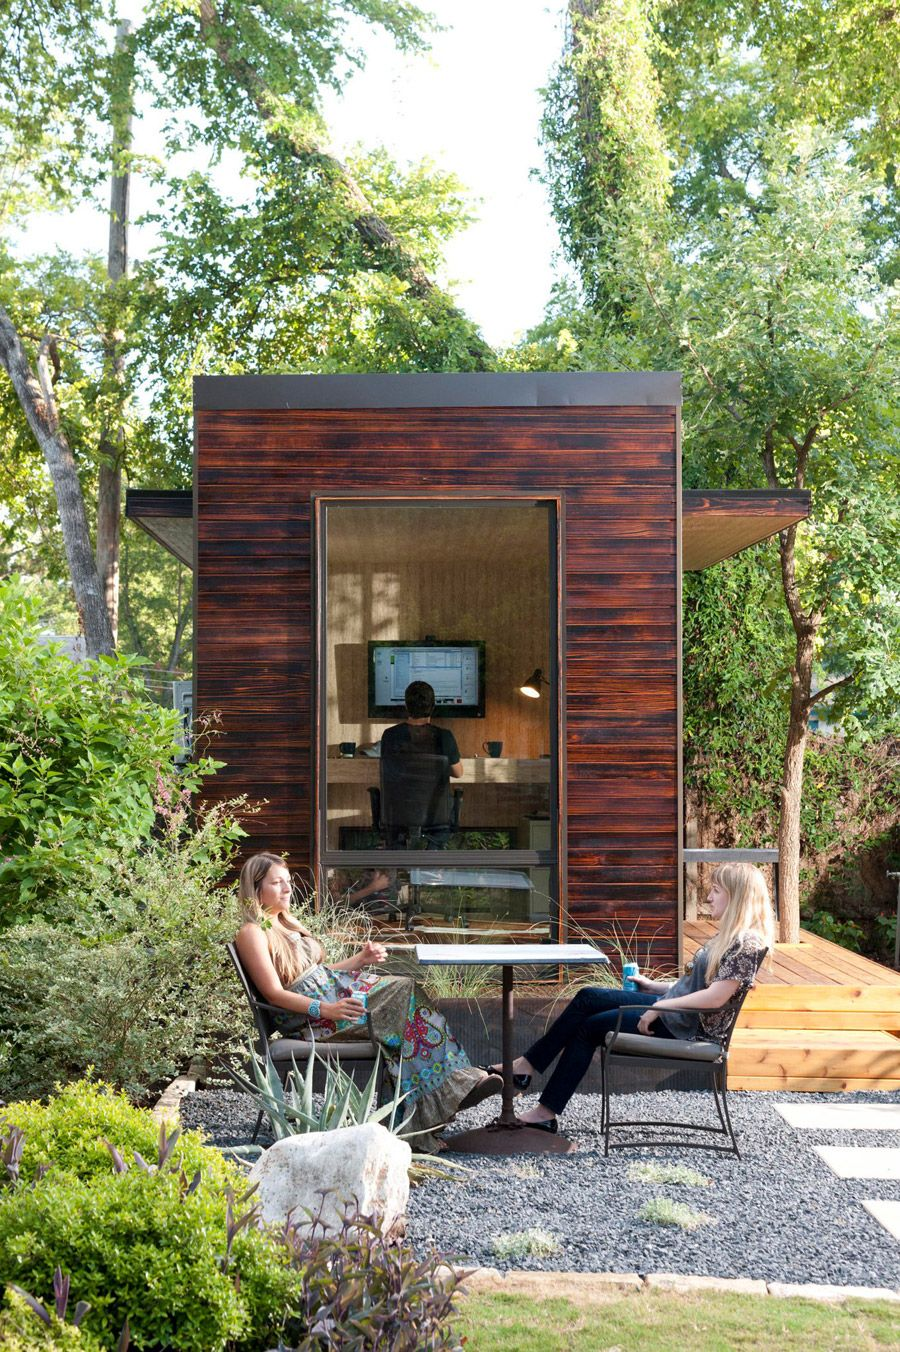 Joeyu0027s 92 Square Feet Tiny Backyard Office